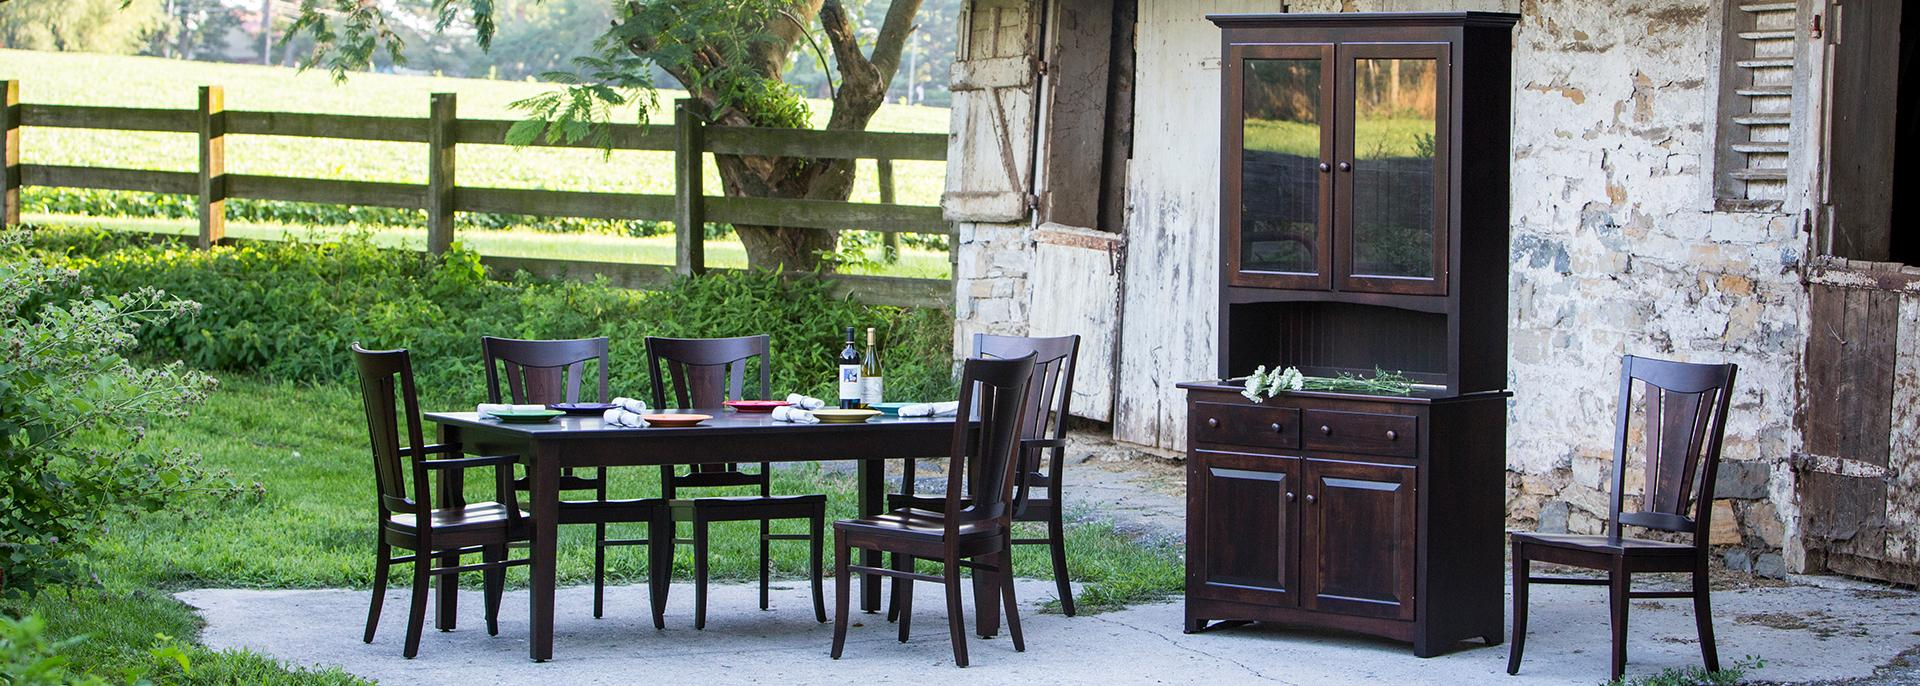 Solid hardwood furniture made by Amish craftsmen in Lancaster, Pennsylvania